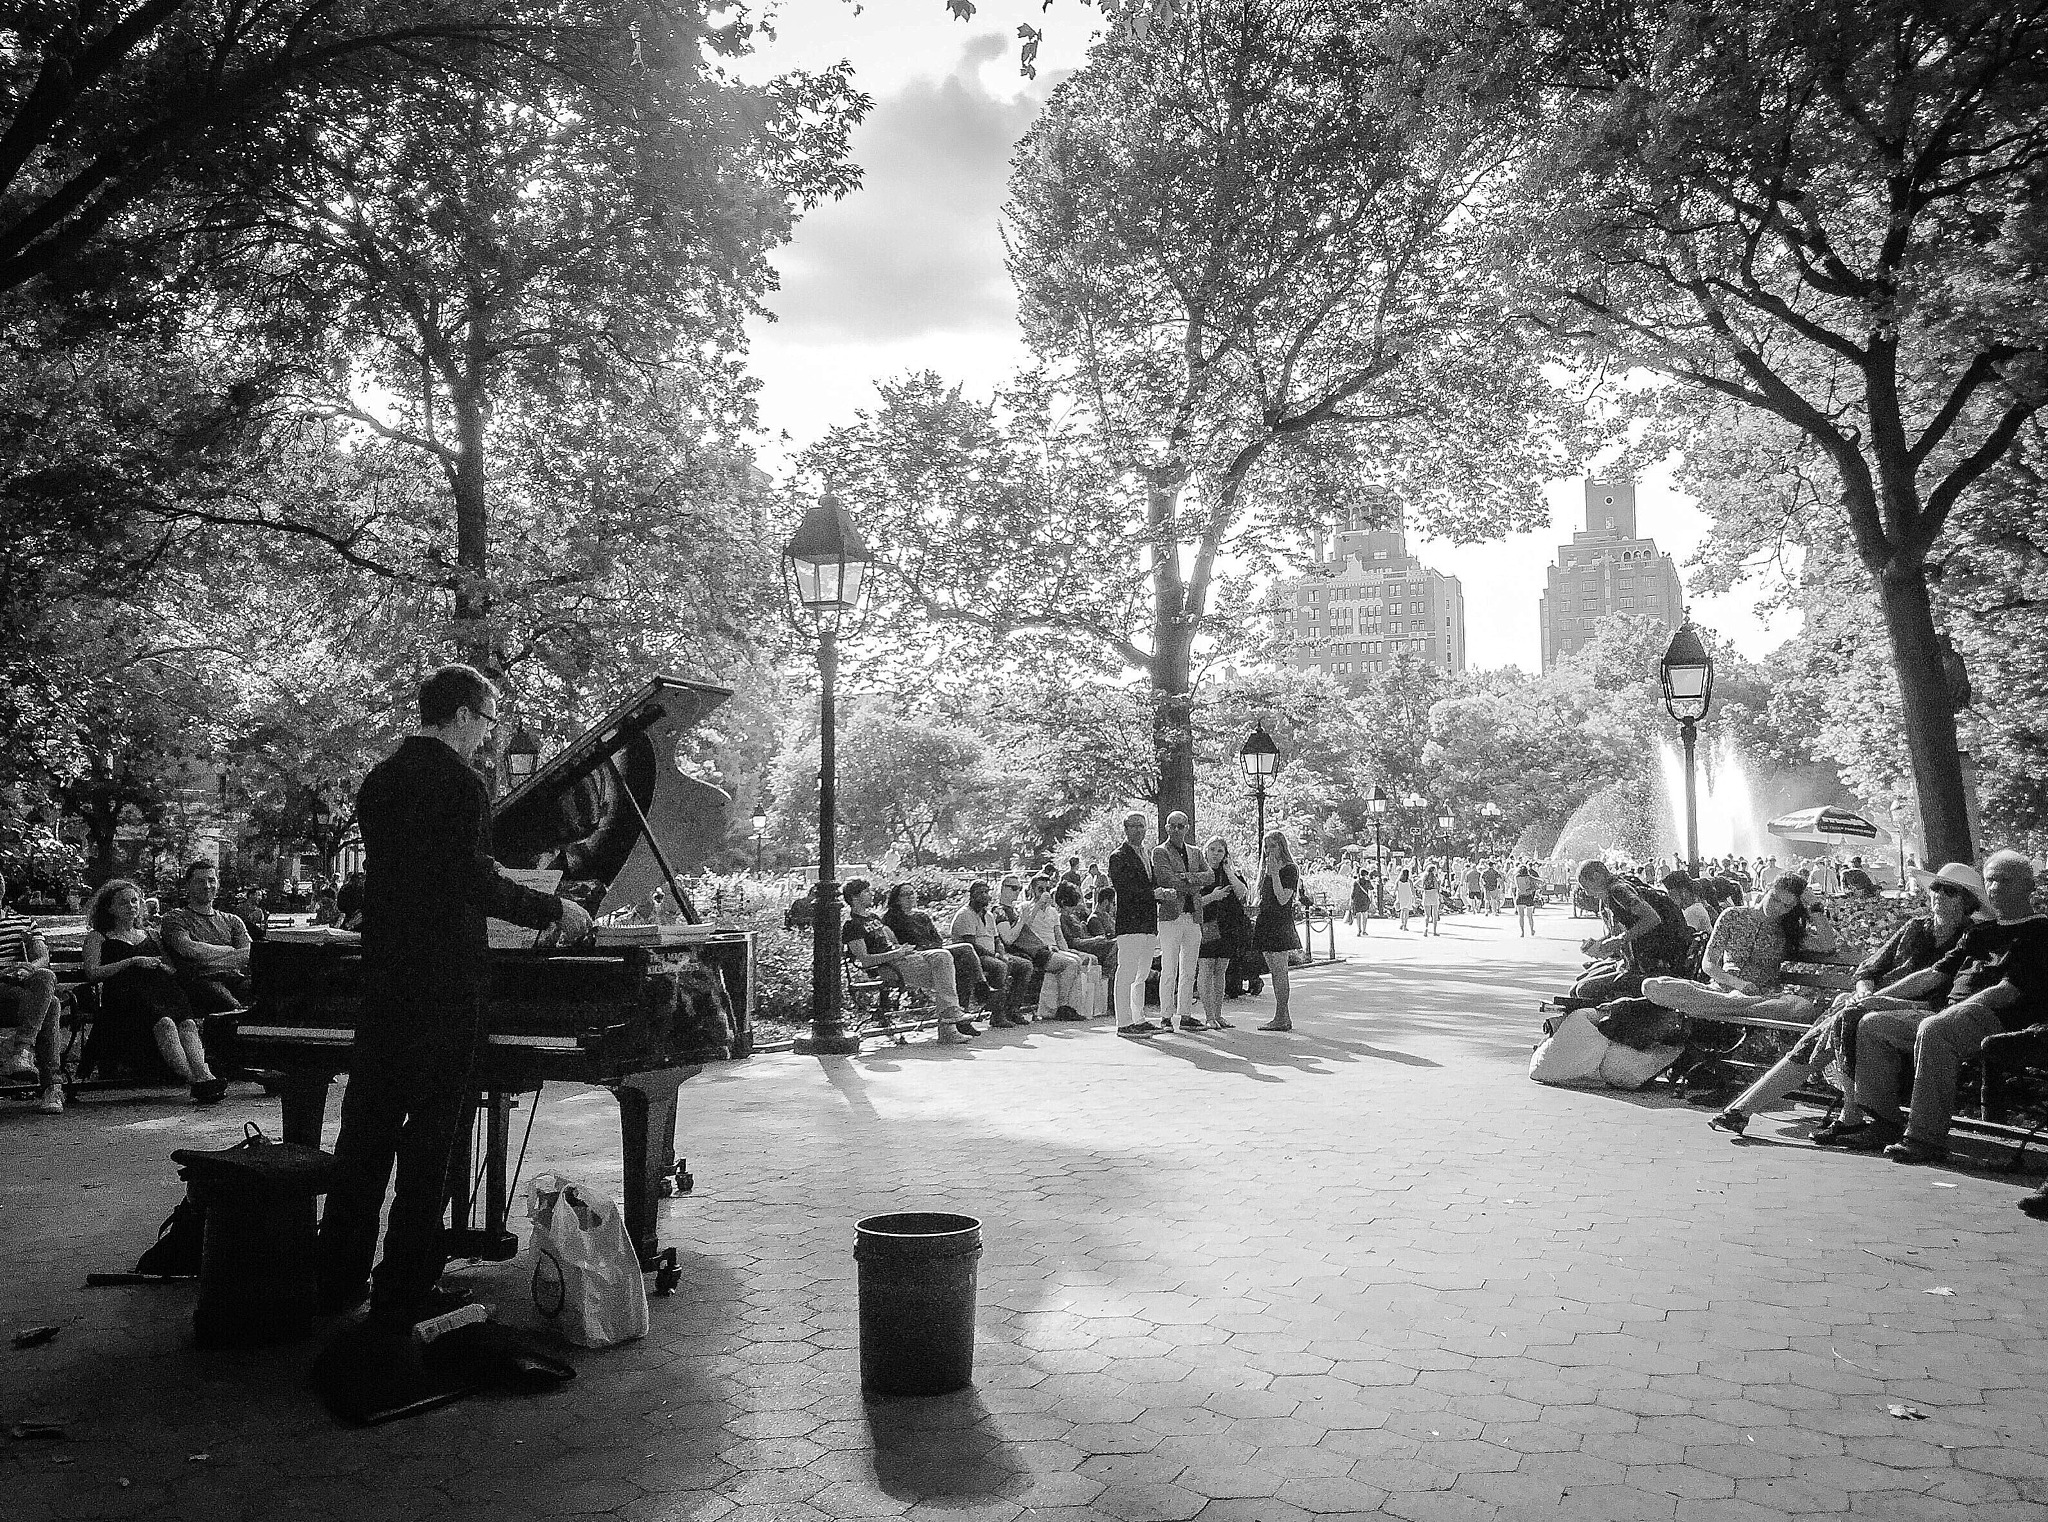 Man in Washington Square by Loralyn